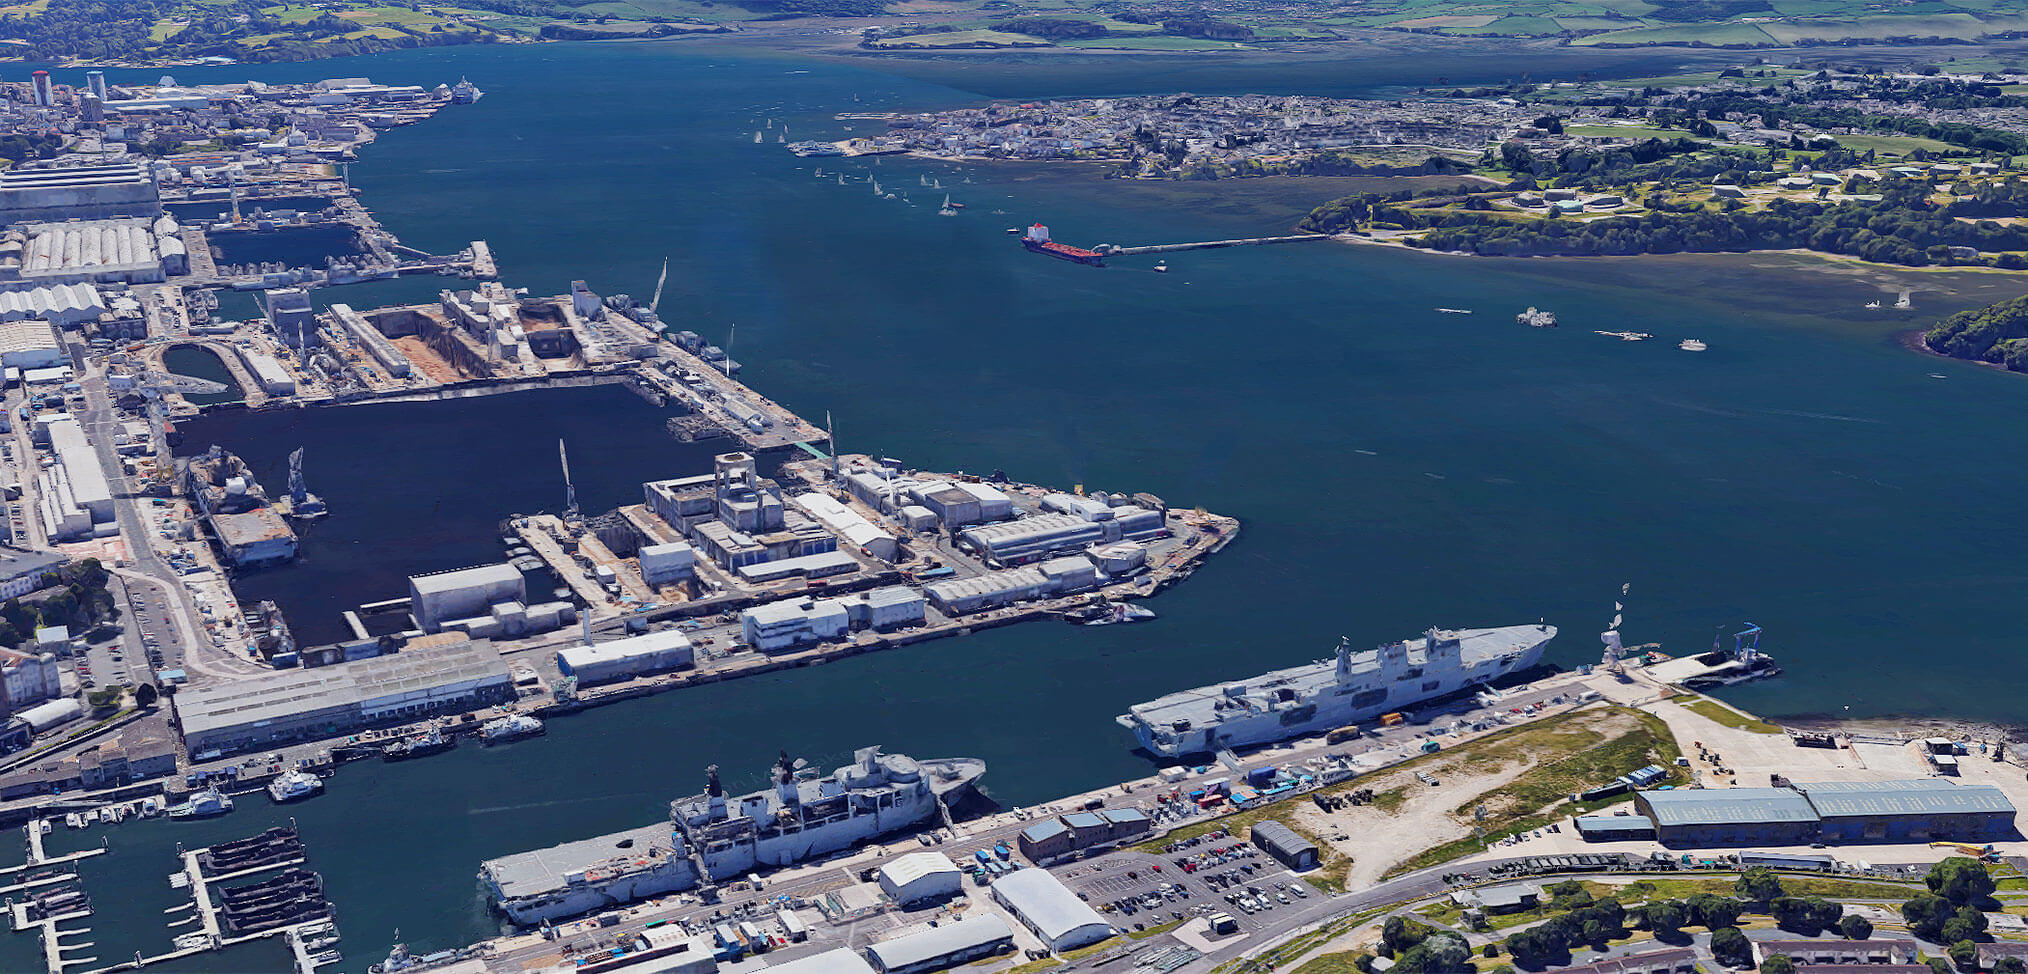 Will Devonport naval base survive the next round of cuts to the Royal Navy?